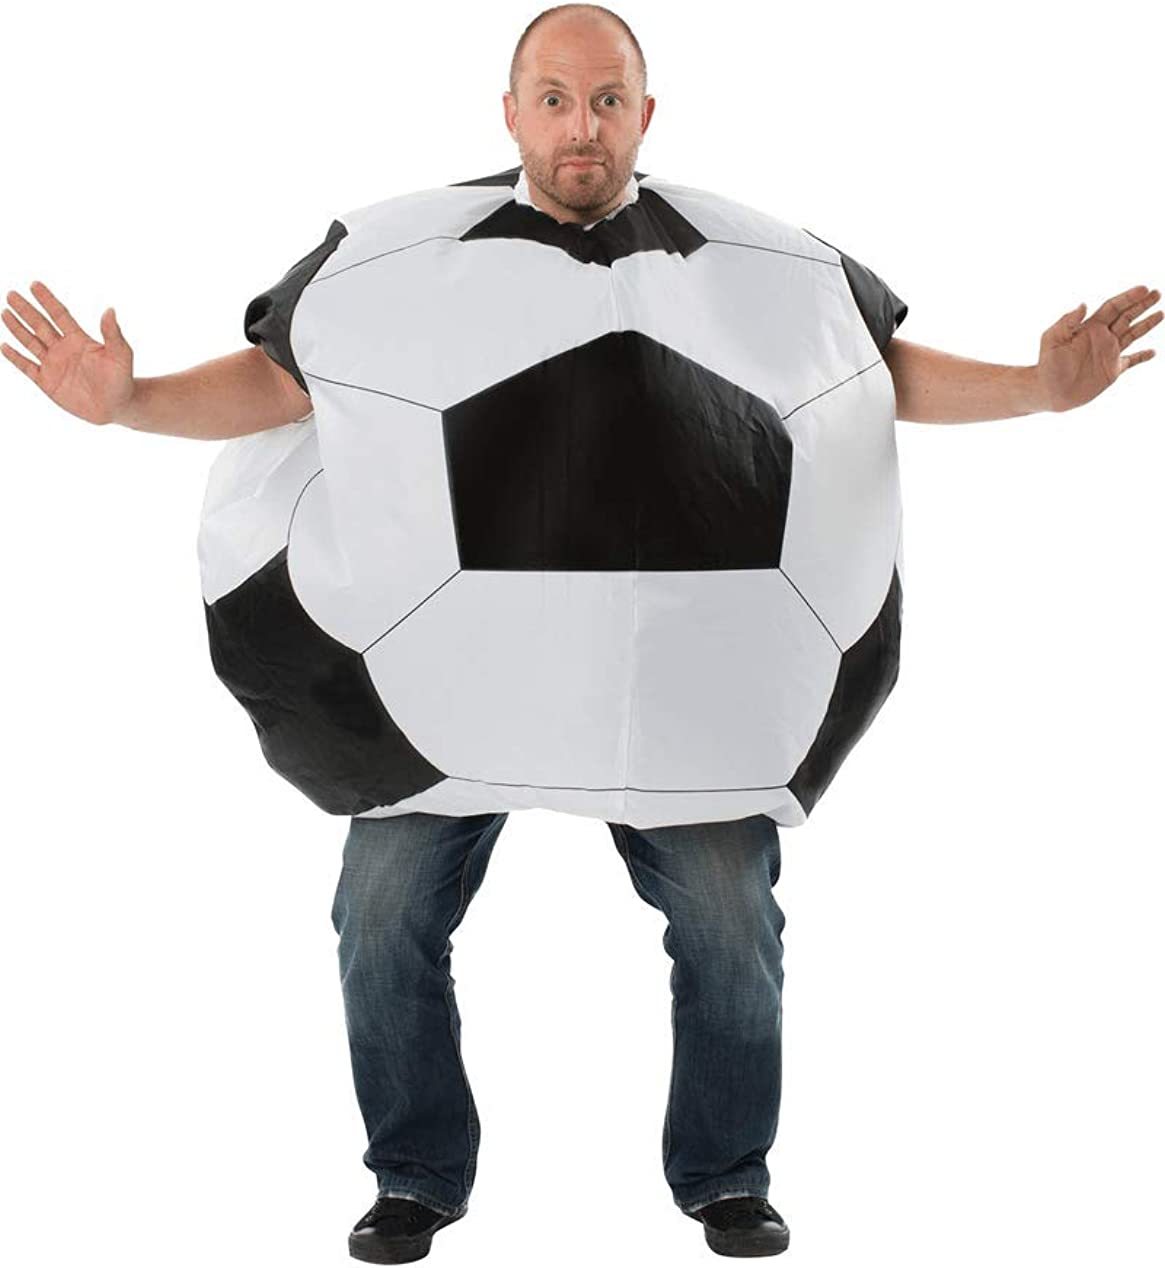 ORION COSTUMES Adult Inflatable Football Costume: Amazon.es: Ropa ...